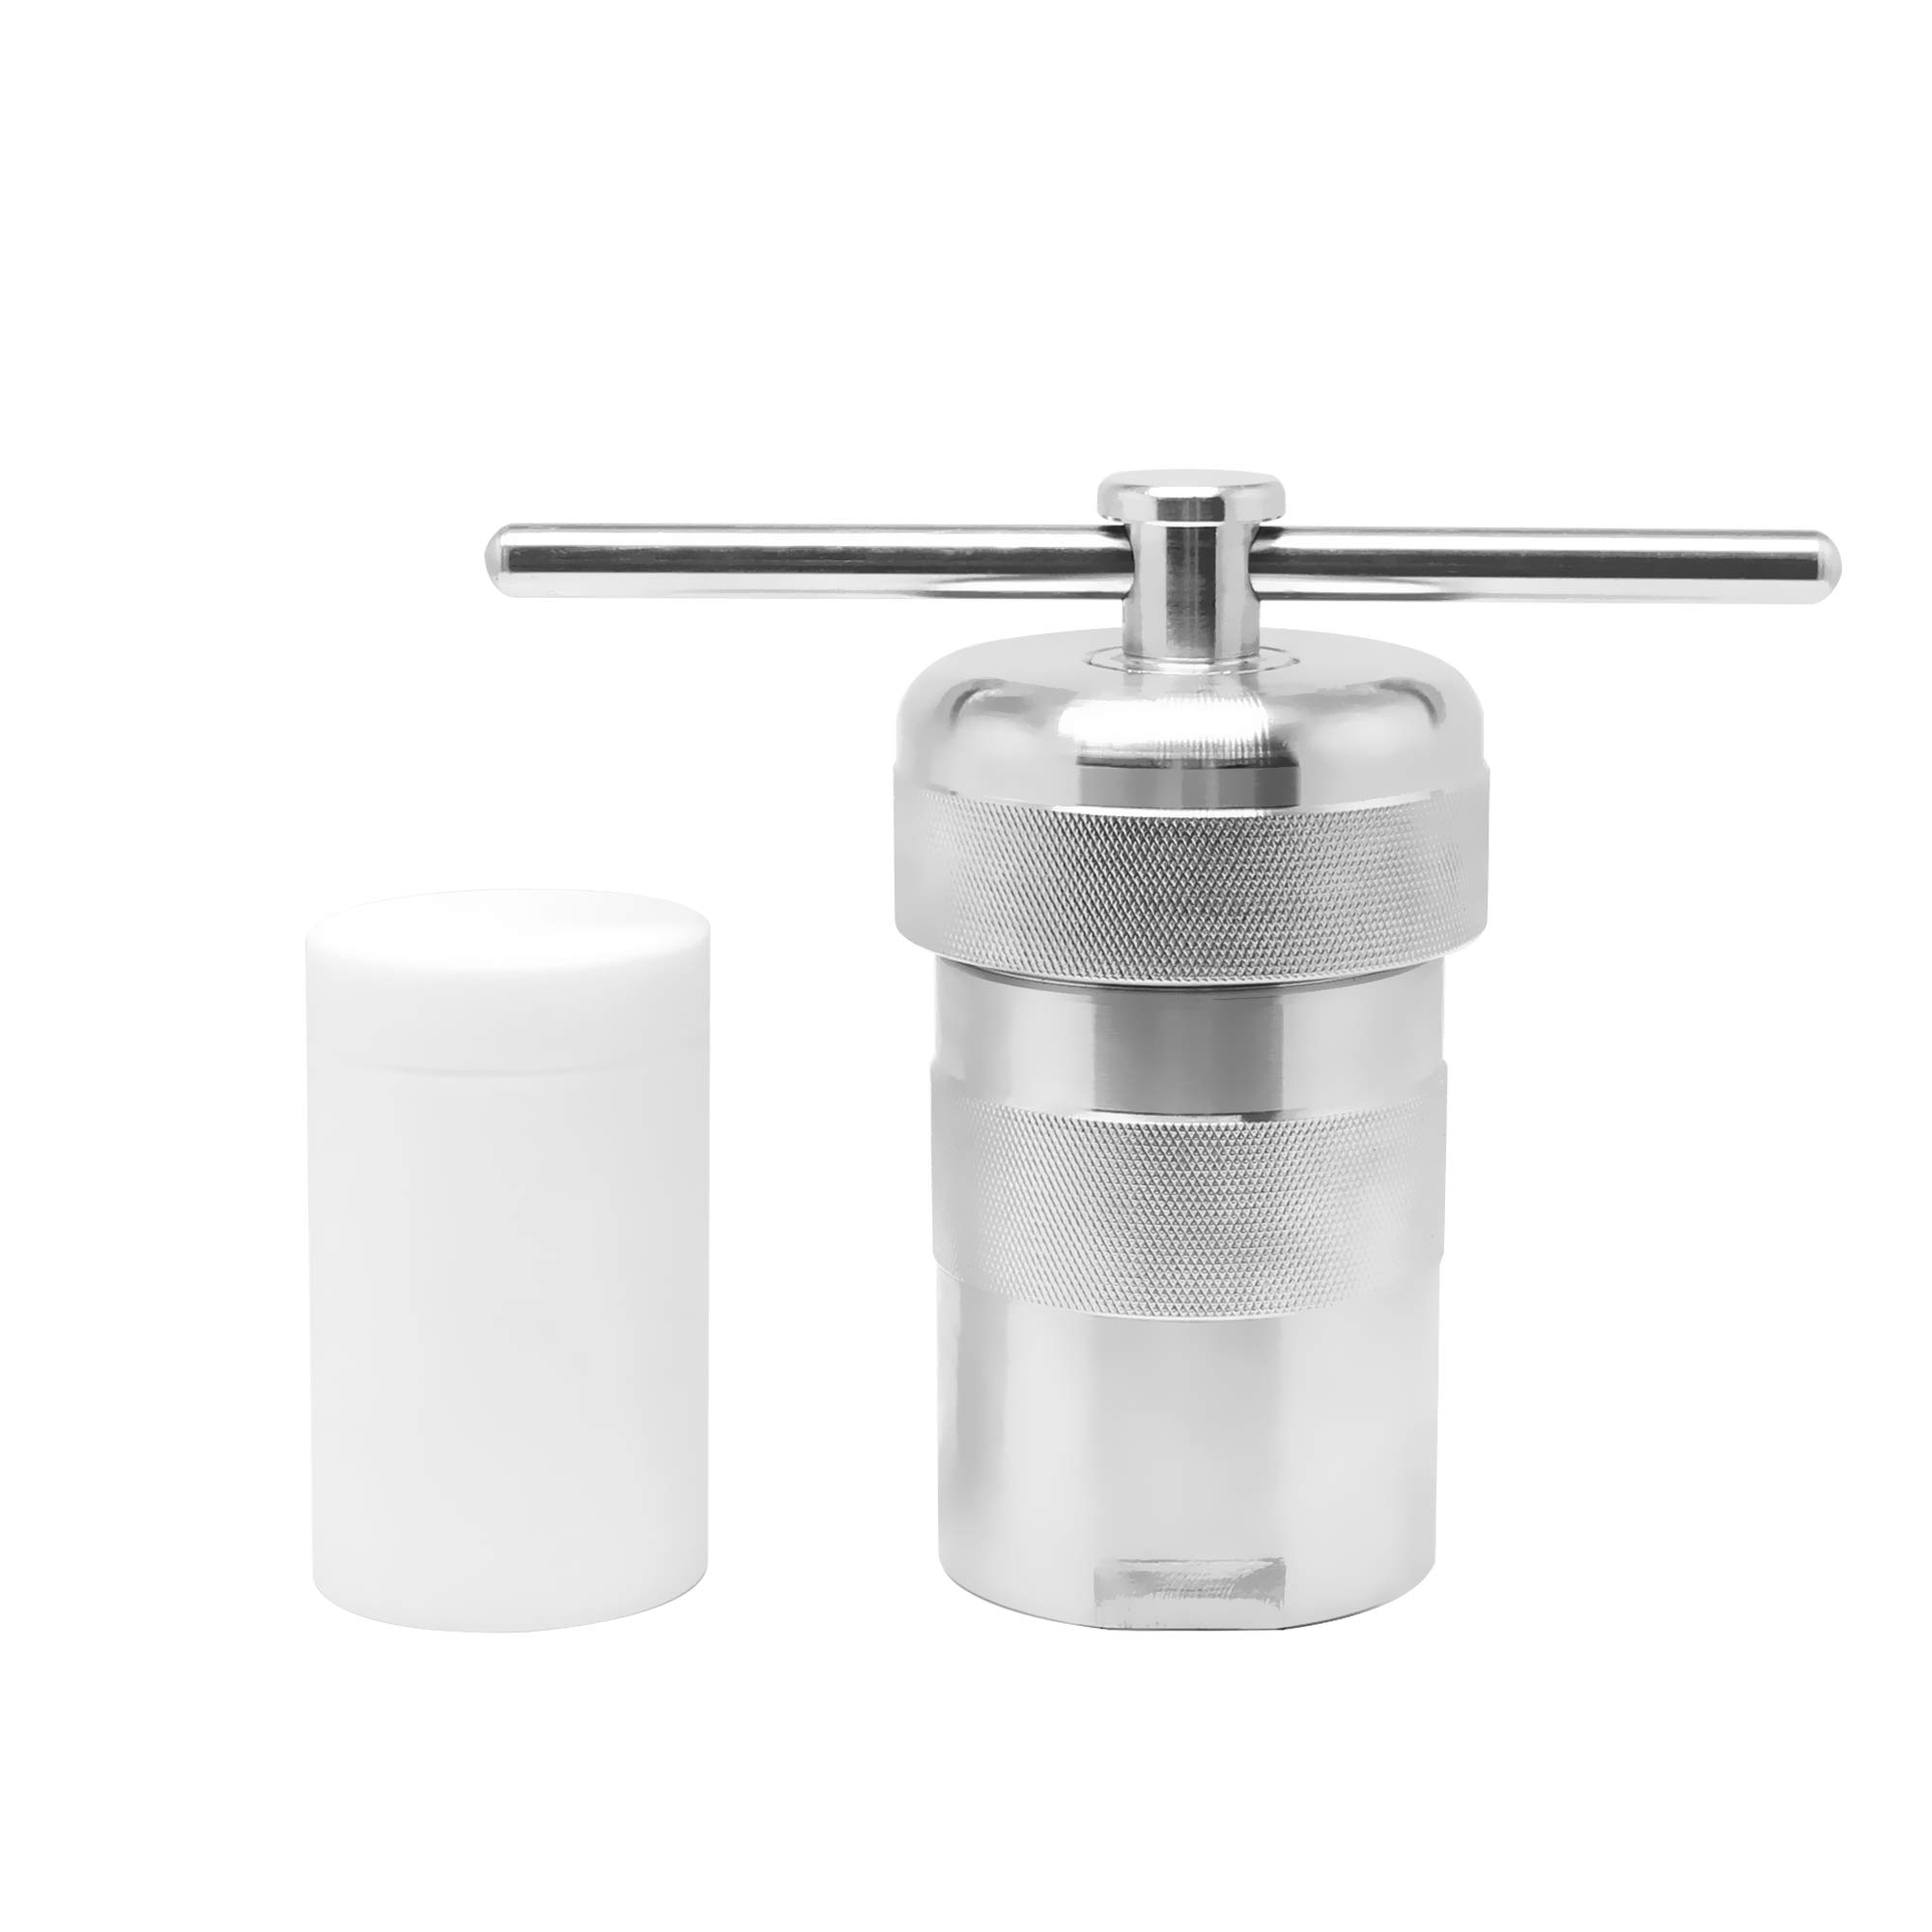 BAOSHISHAN 100ml Hydrothermal Synthesis Autoclave Reactor 6Mpa 240C with Pressure Relief Hole and 7mm Thickening PTFE Lining Acid and Alkali Resistance by BAOSHISHAN (Image #1)